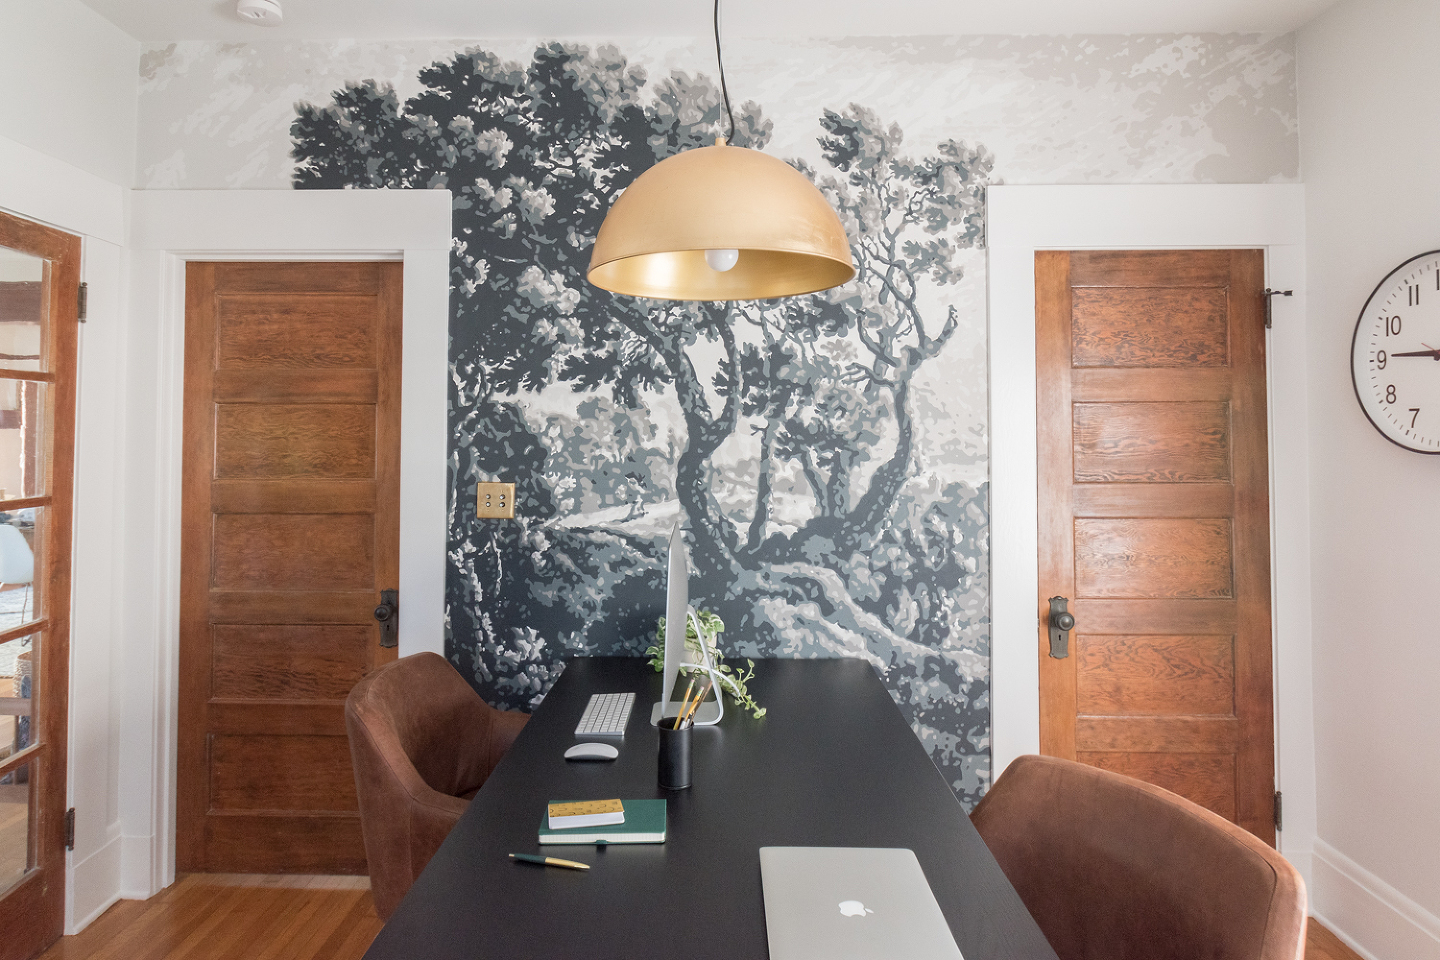 The Most Amazing Diy Wall Mural Ever And My Top Picks From The Fall